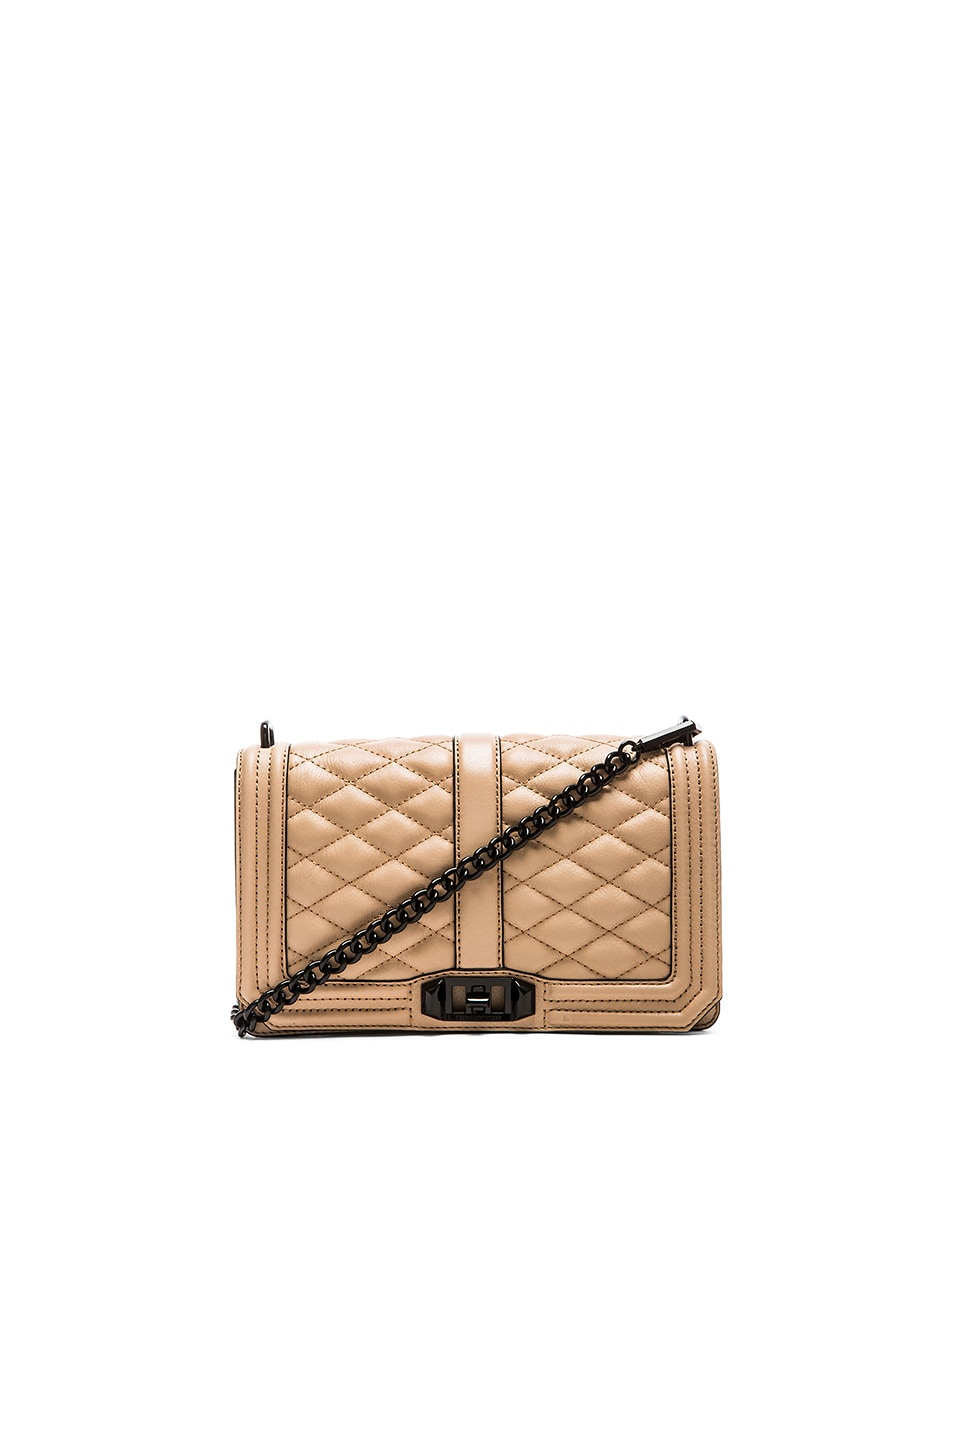 Rebecca Minkoff Love Crossbody in Latte